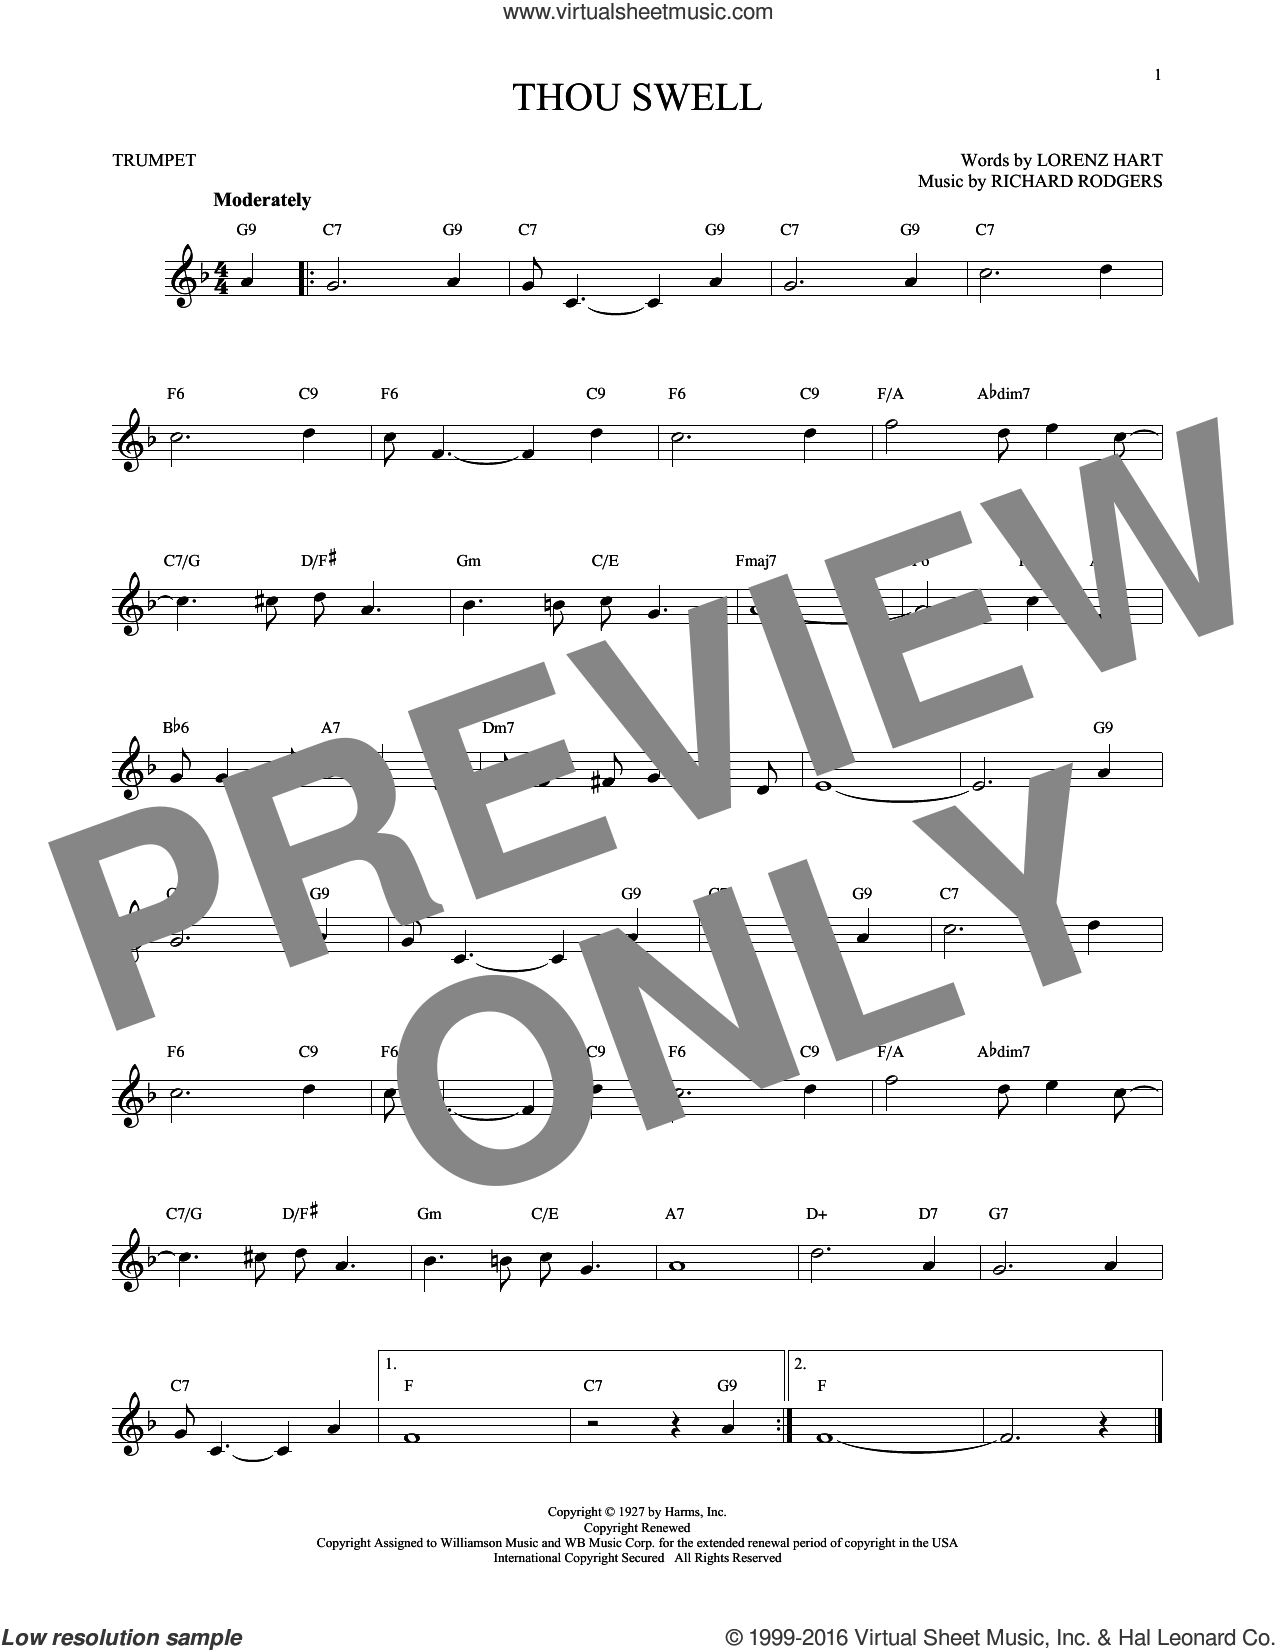 Thou Swell sheet music for trumpet solo by Rodgers & Hart, Lorenz Hart and Richard Rodgers, intermediate skill level